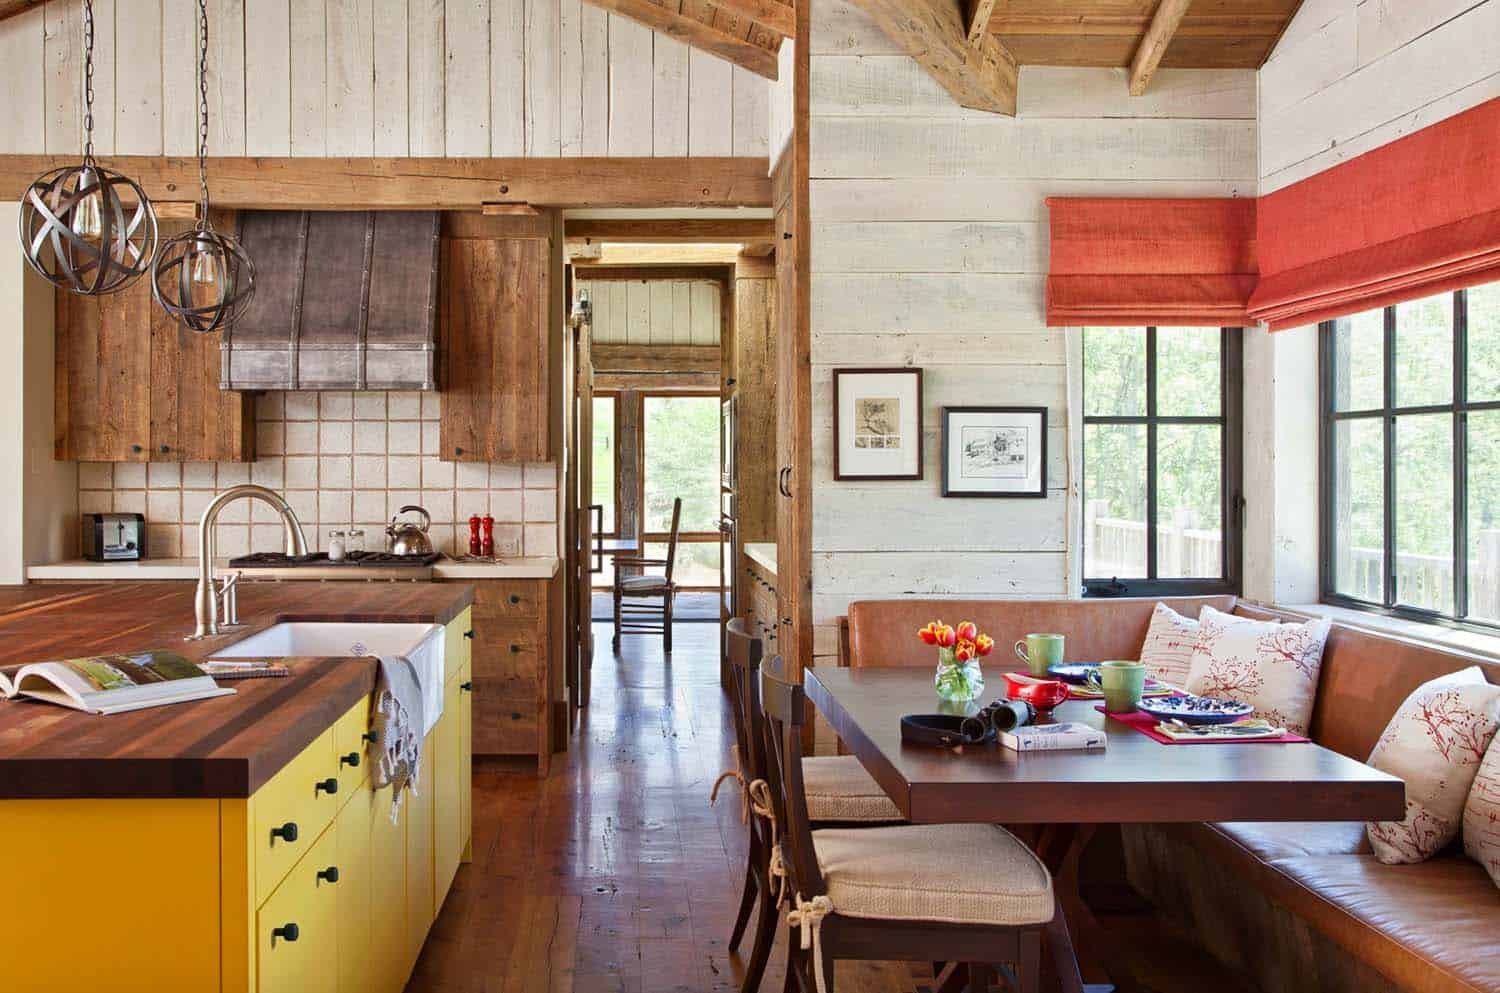 Rustic Mountain Retreat-Miller Roodell Architects-02-1 Kindesign